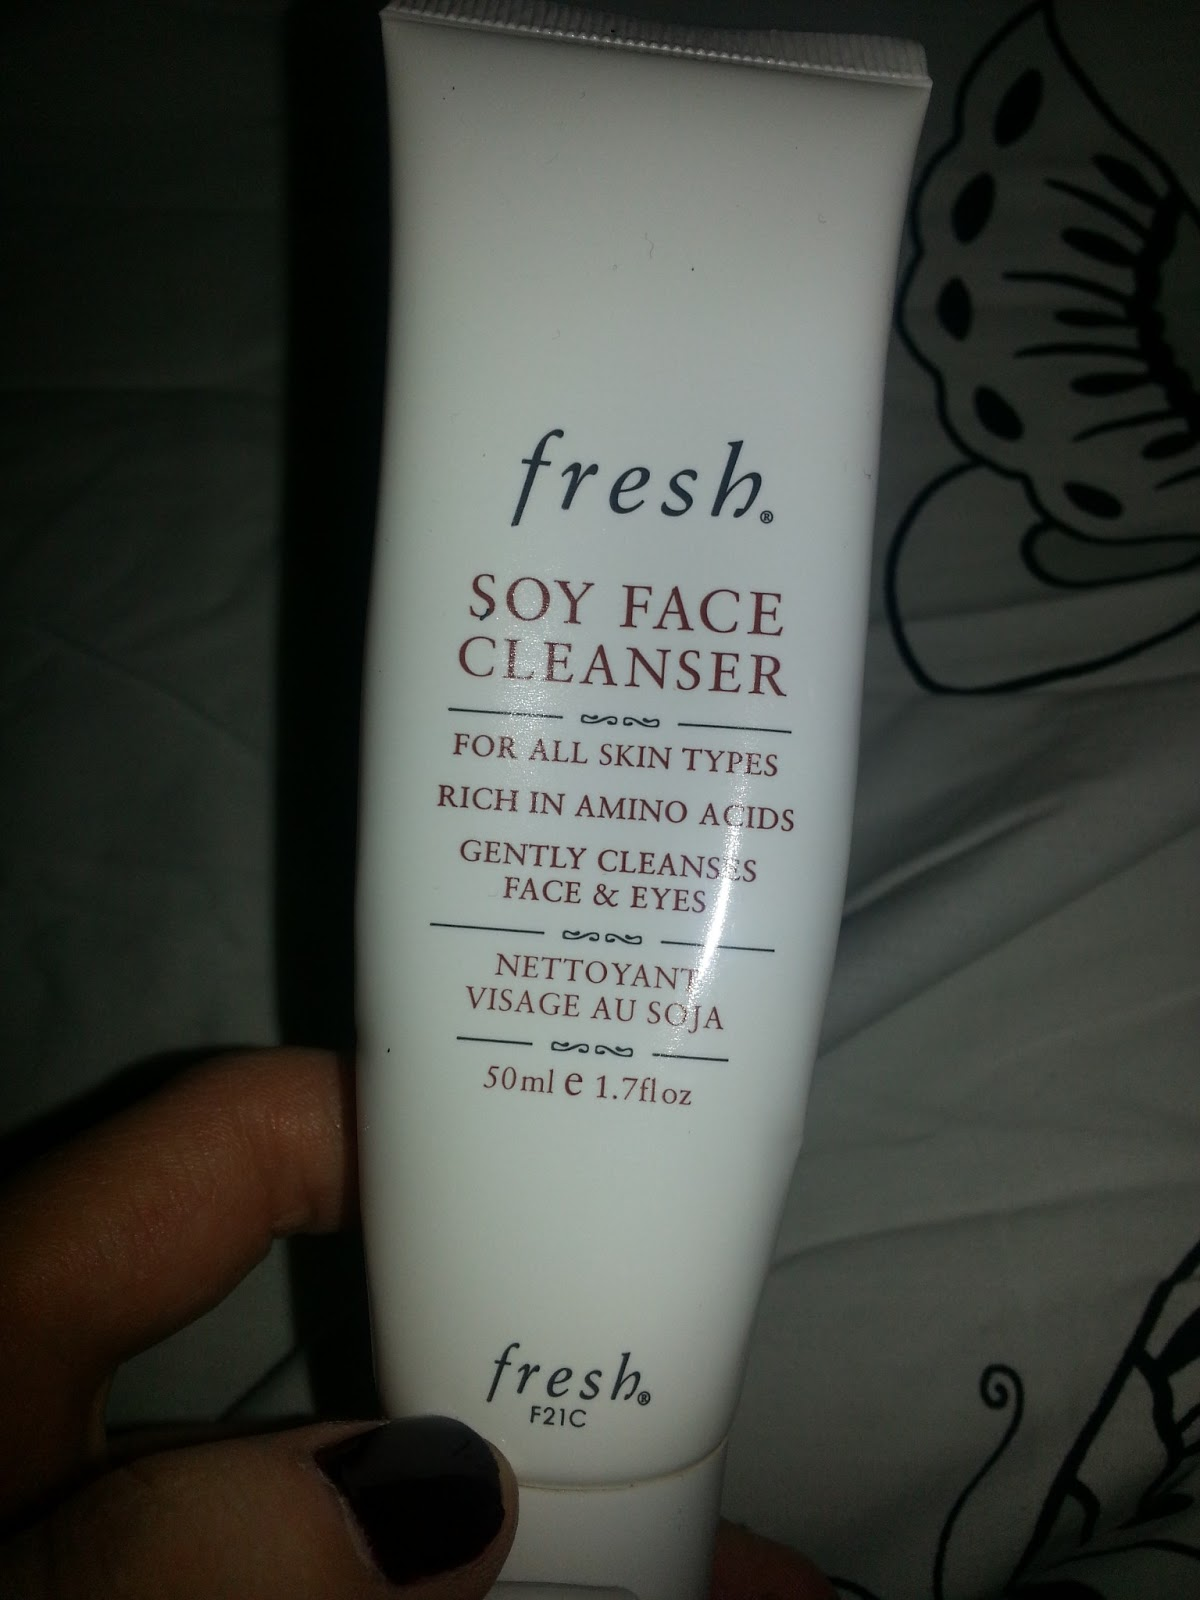 Soy Face Cleanser by fresh #15